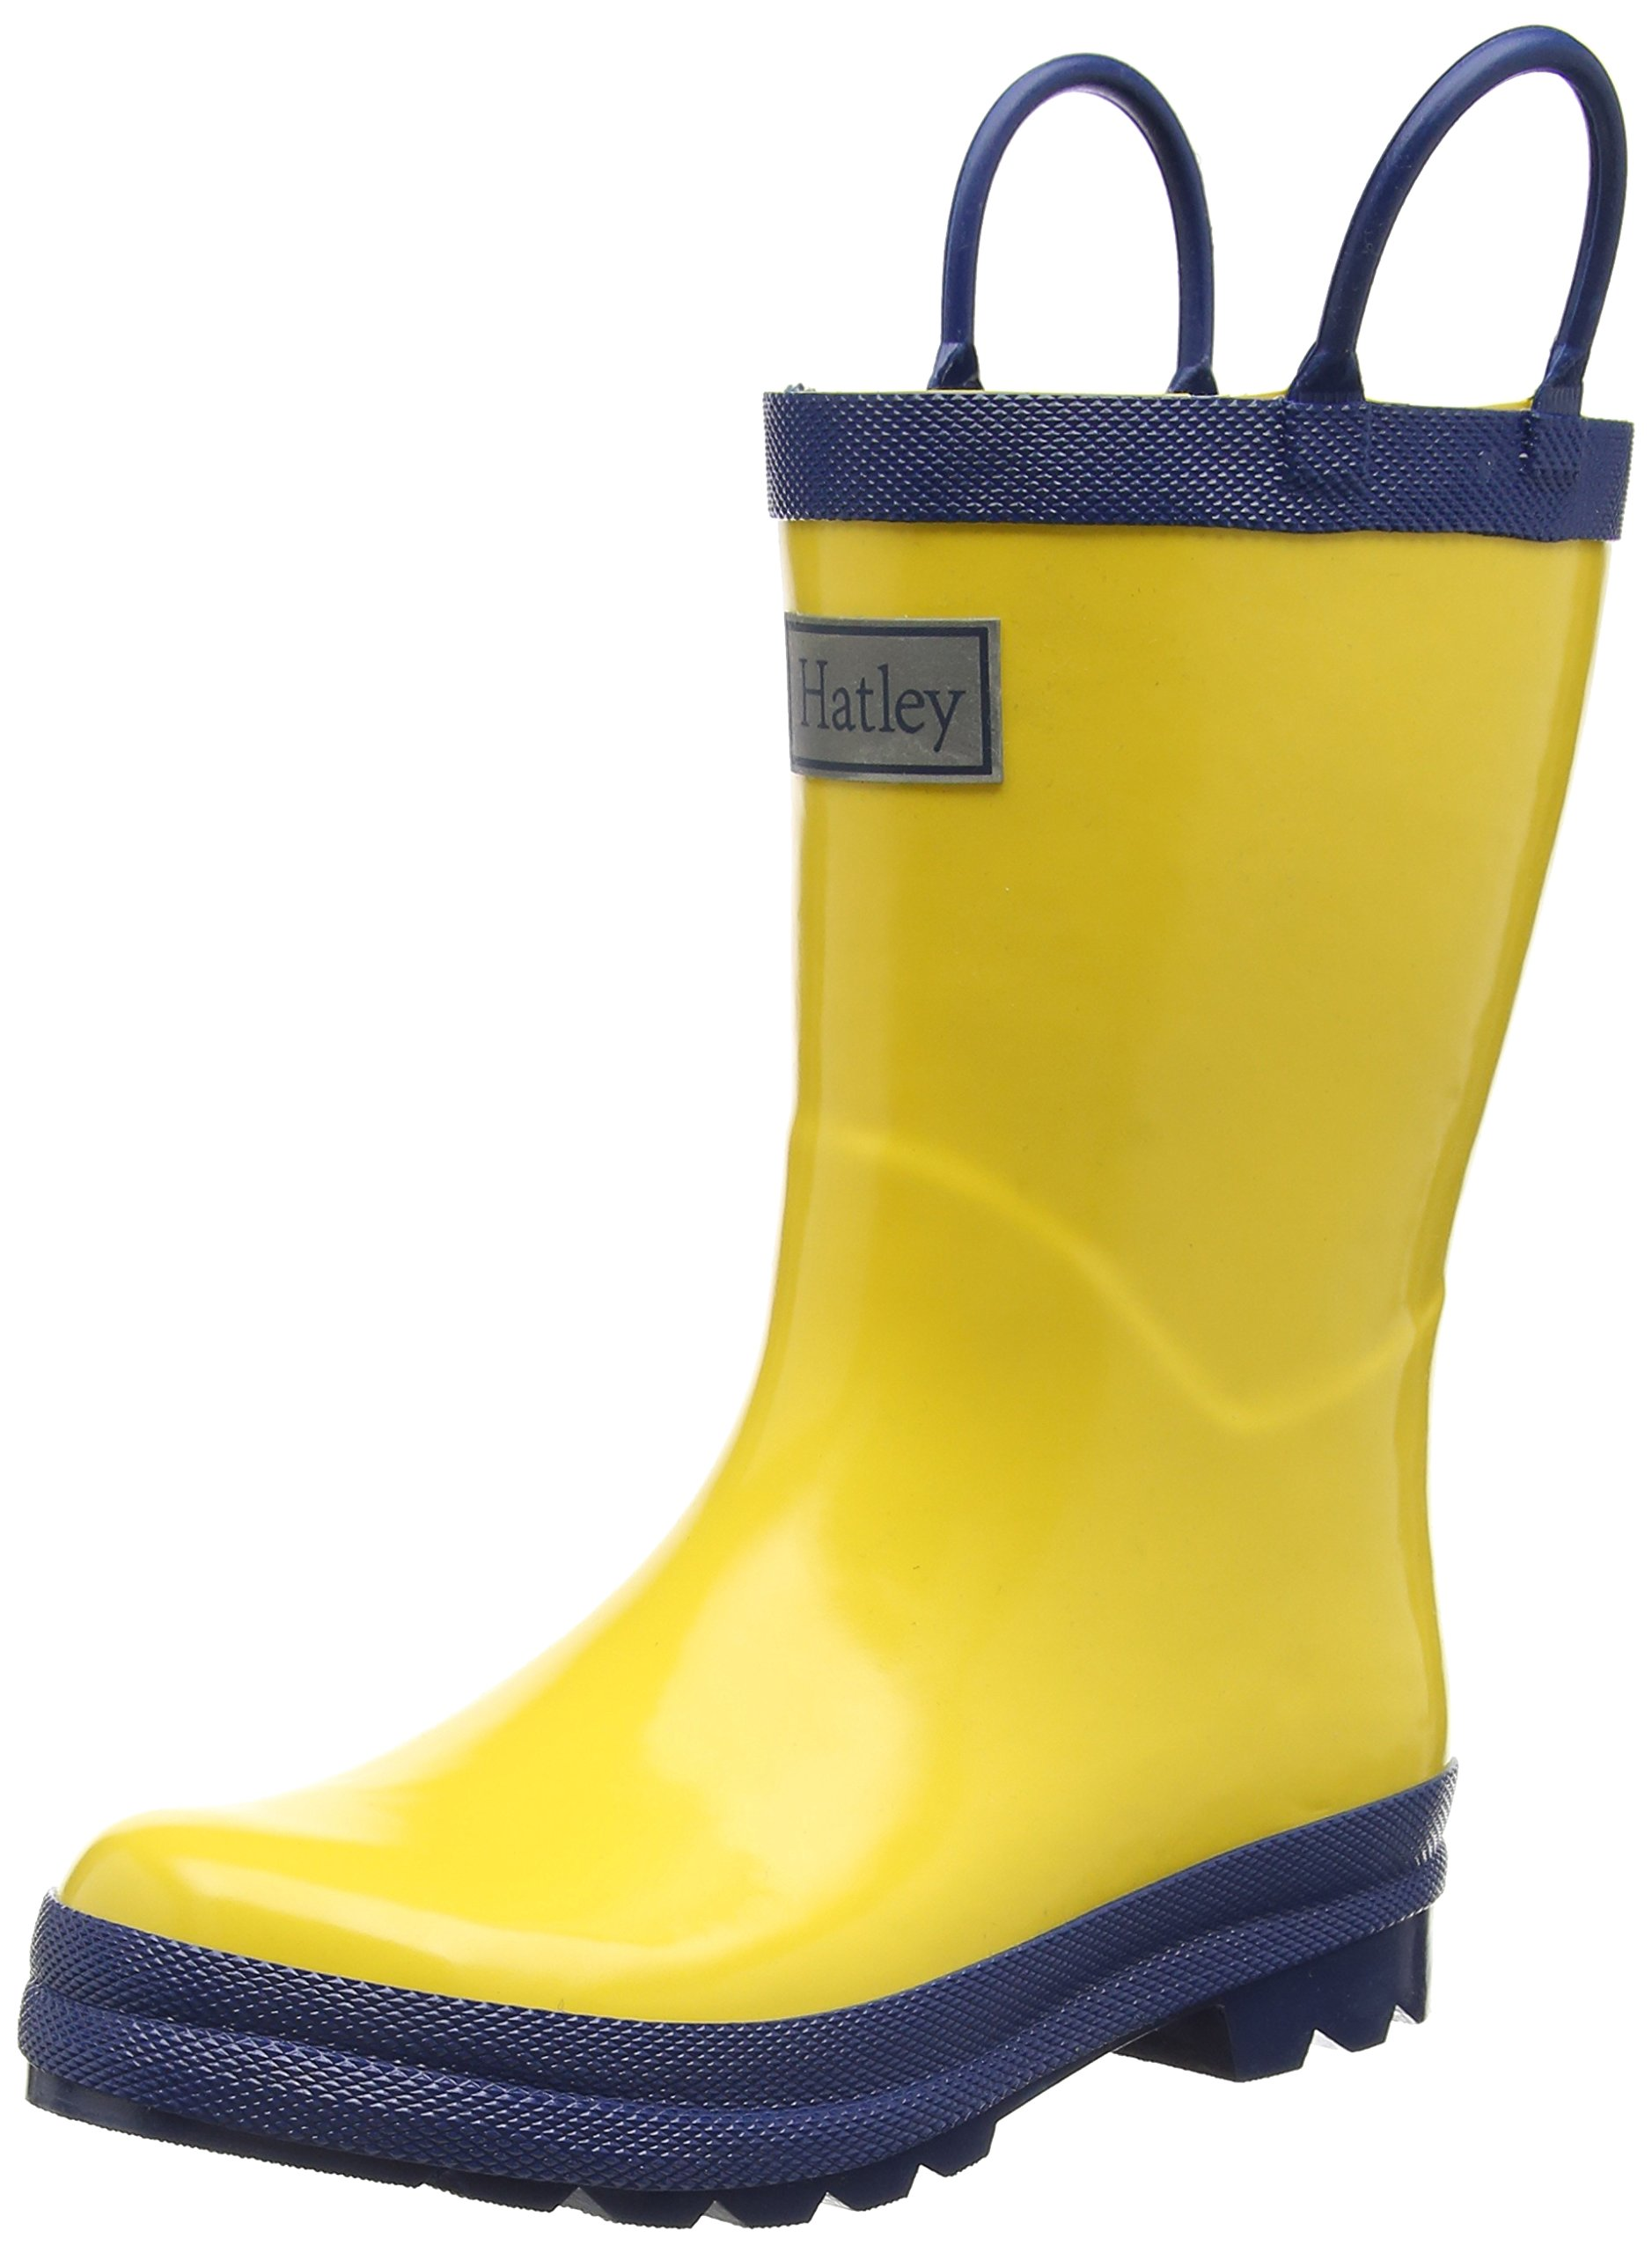 Hatley Kids' Classic Rain Boots Accessory, Yellow & Navy, 12 US Child